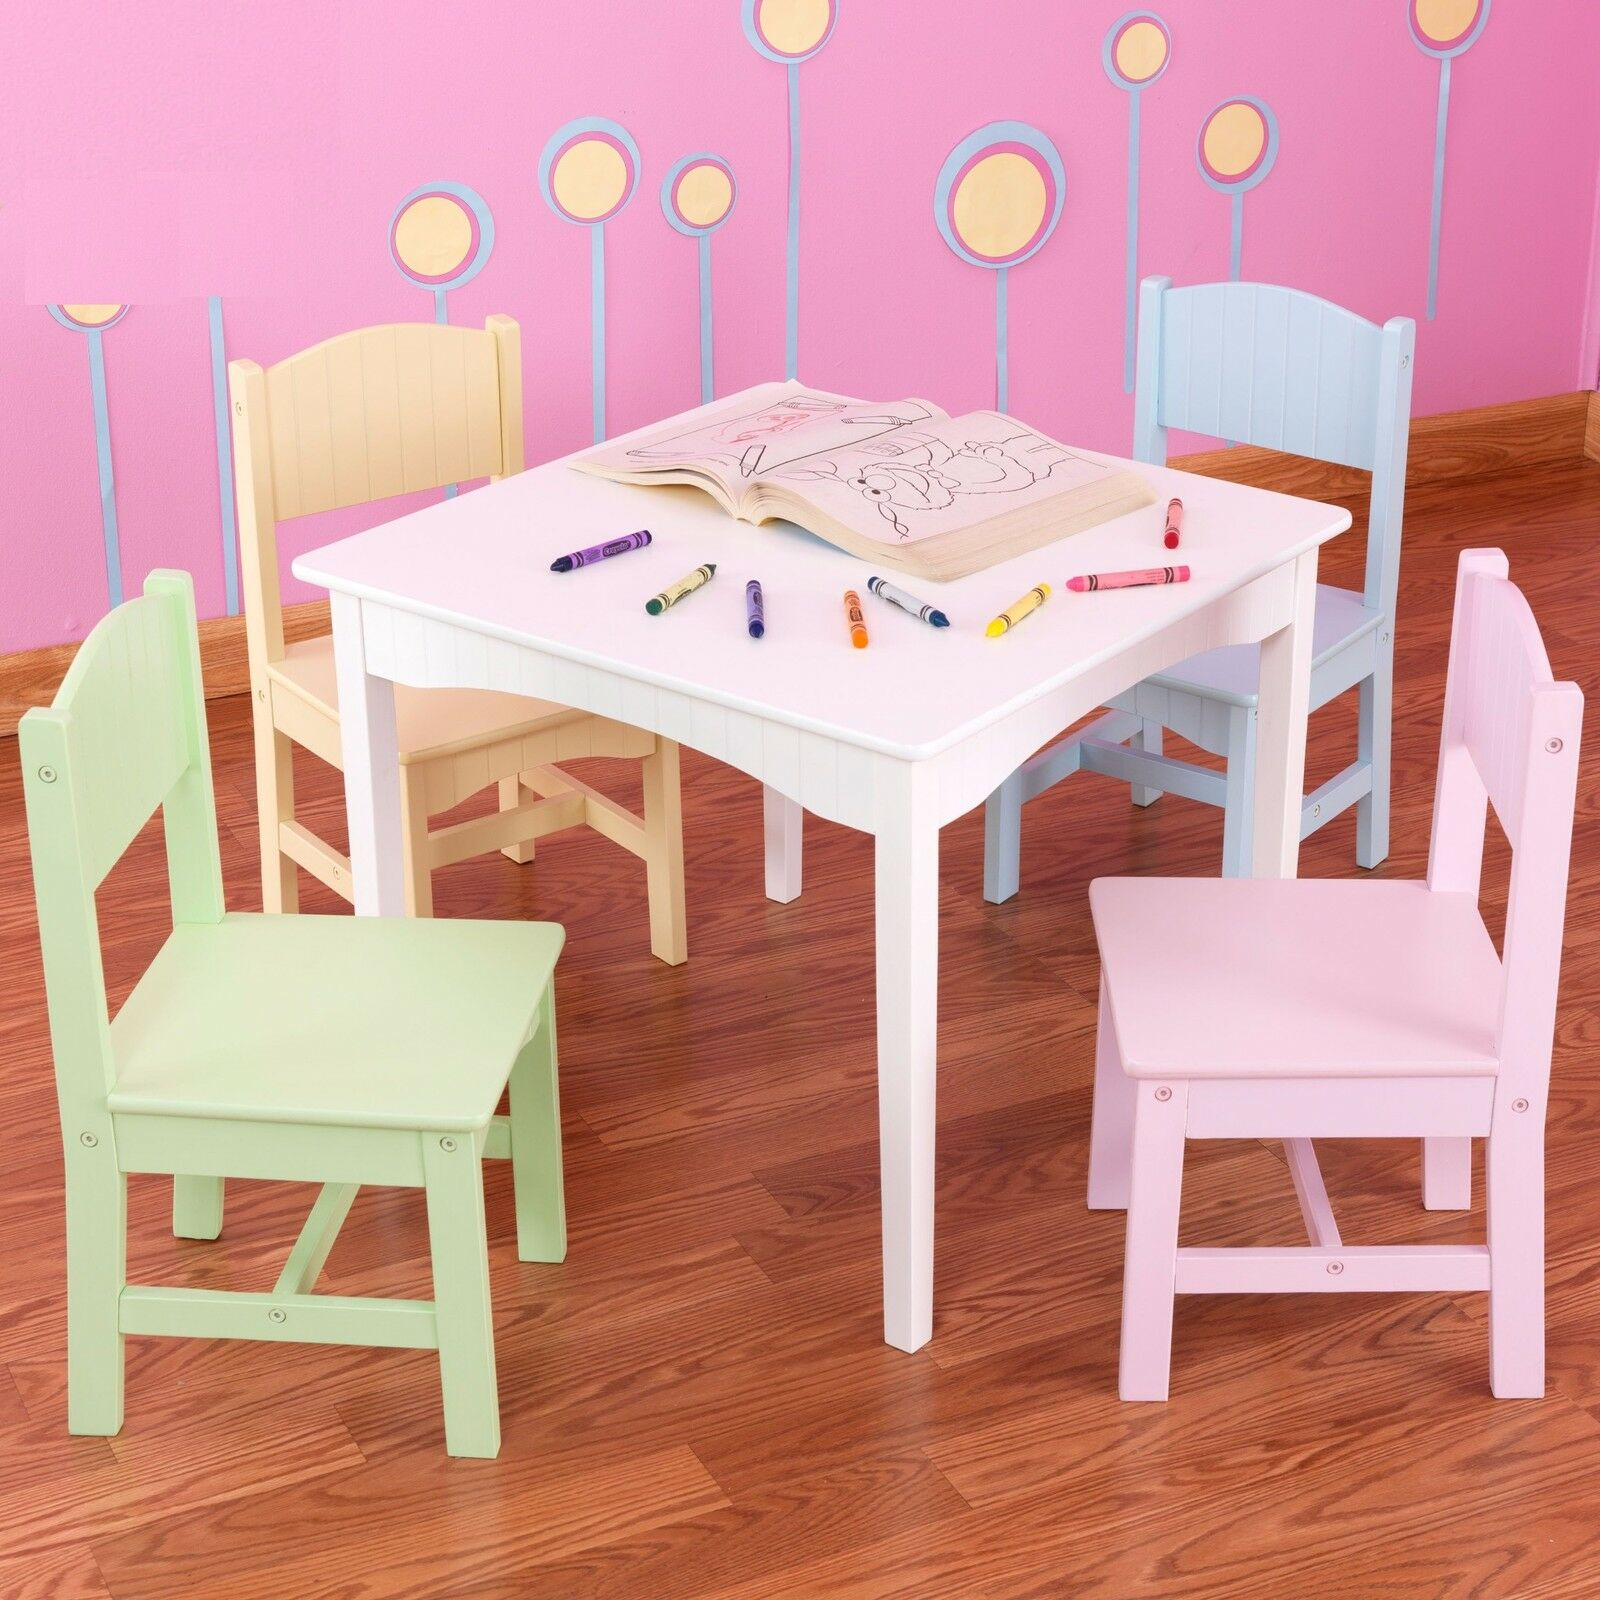 Kids tea party table - Kids Activity Table And Chairs Children Tea Party Playroom Furniture 5 Pc Wood